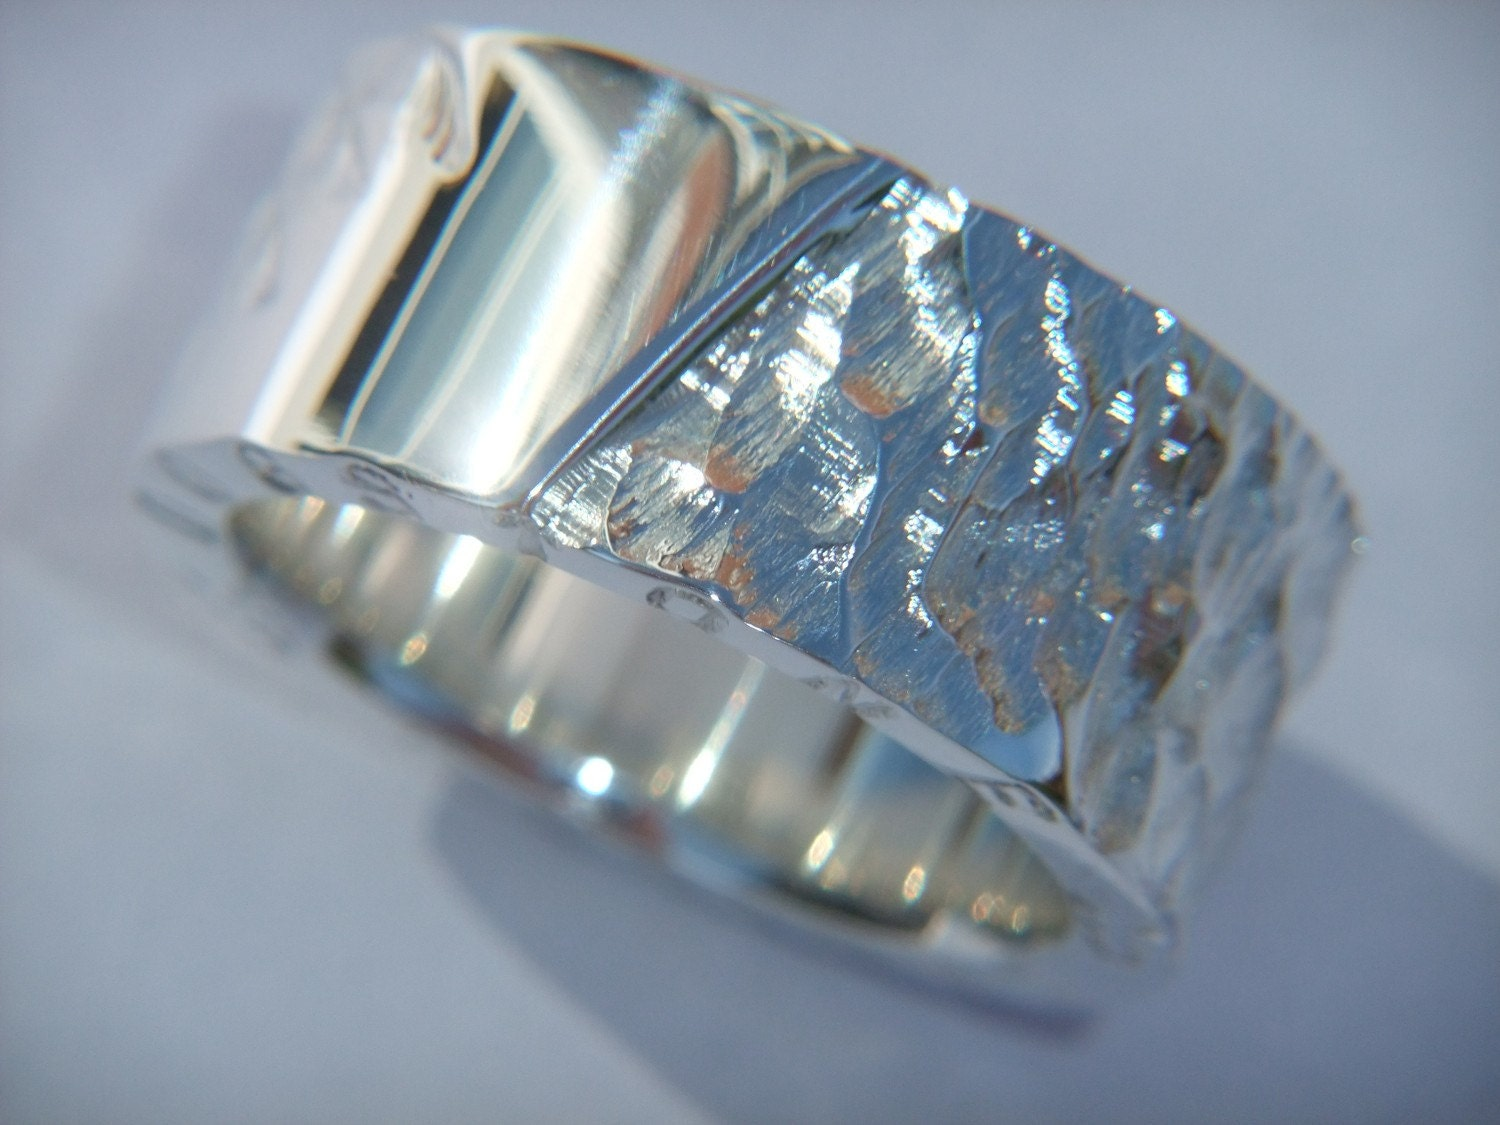 chunky made 925 sterling silver ring with a unique